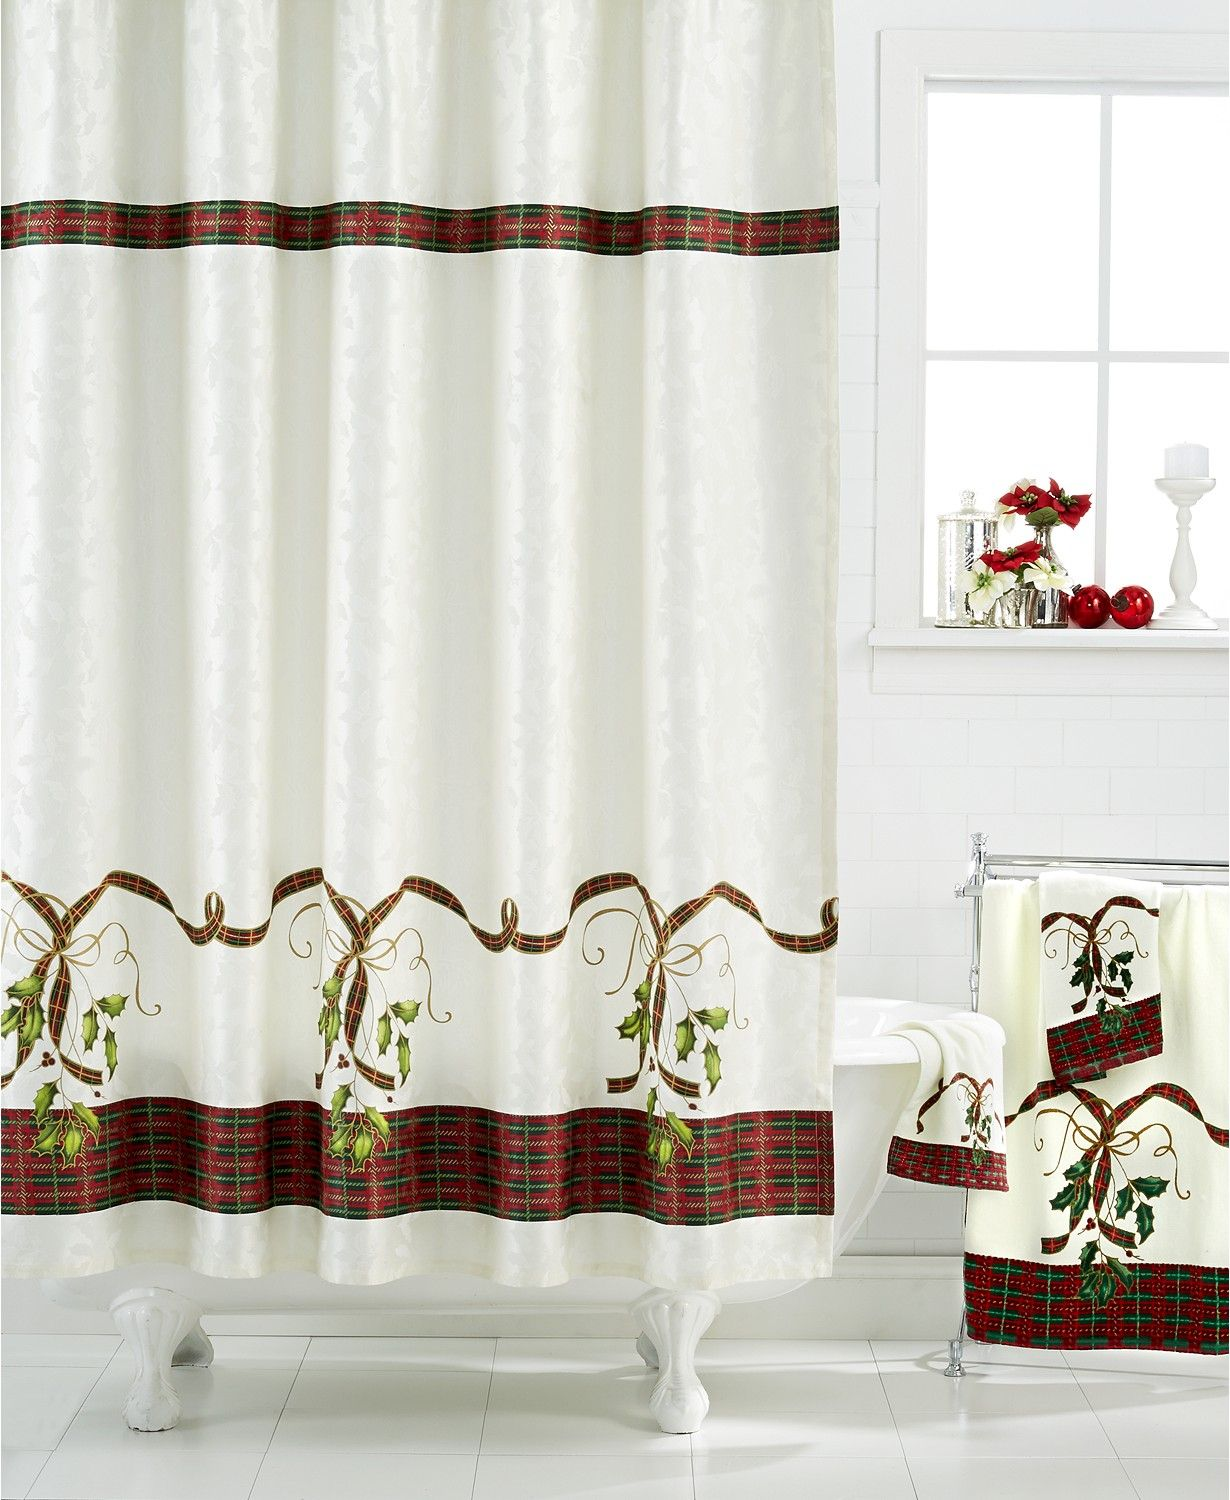 Lenox Holiday Nouveau Bath Collection Bathroom Accessories